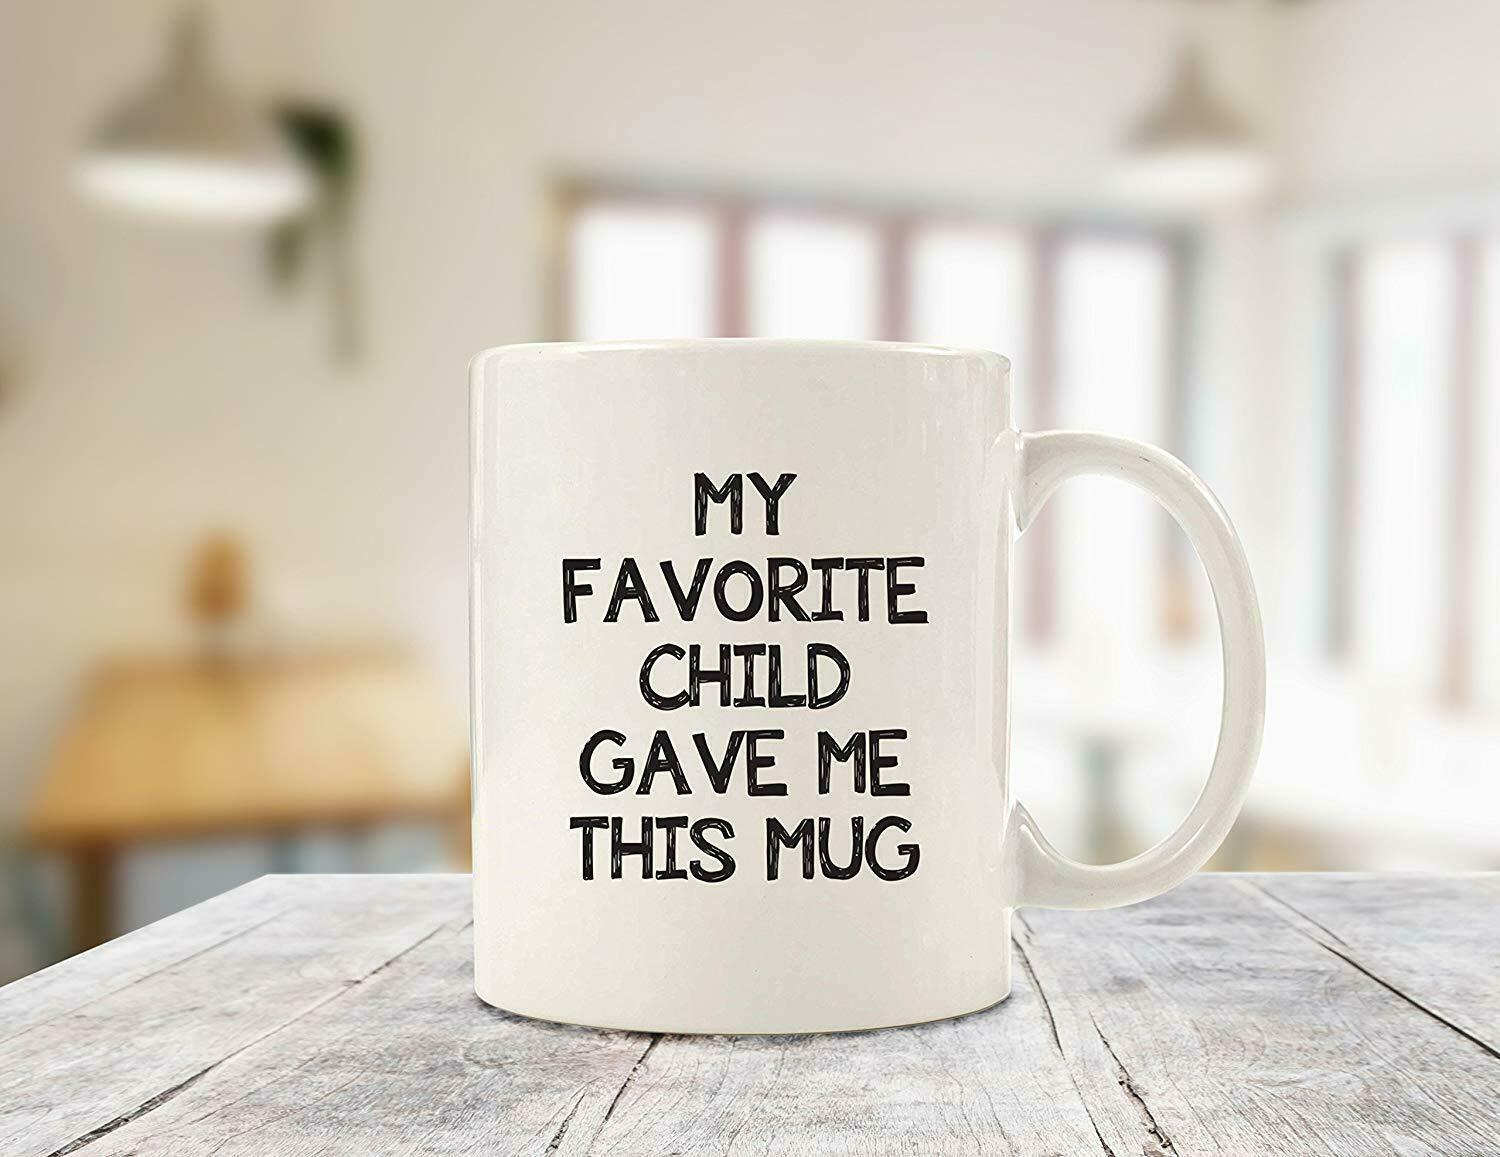 My Favorite Child Gave Me This Funny Coffee Mug - Best Dad & Mom Gifts - Gag